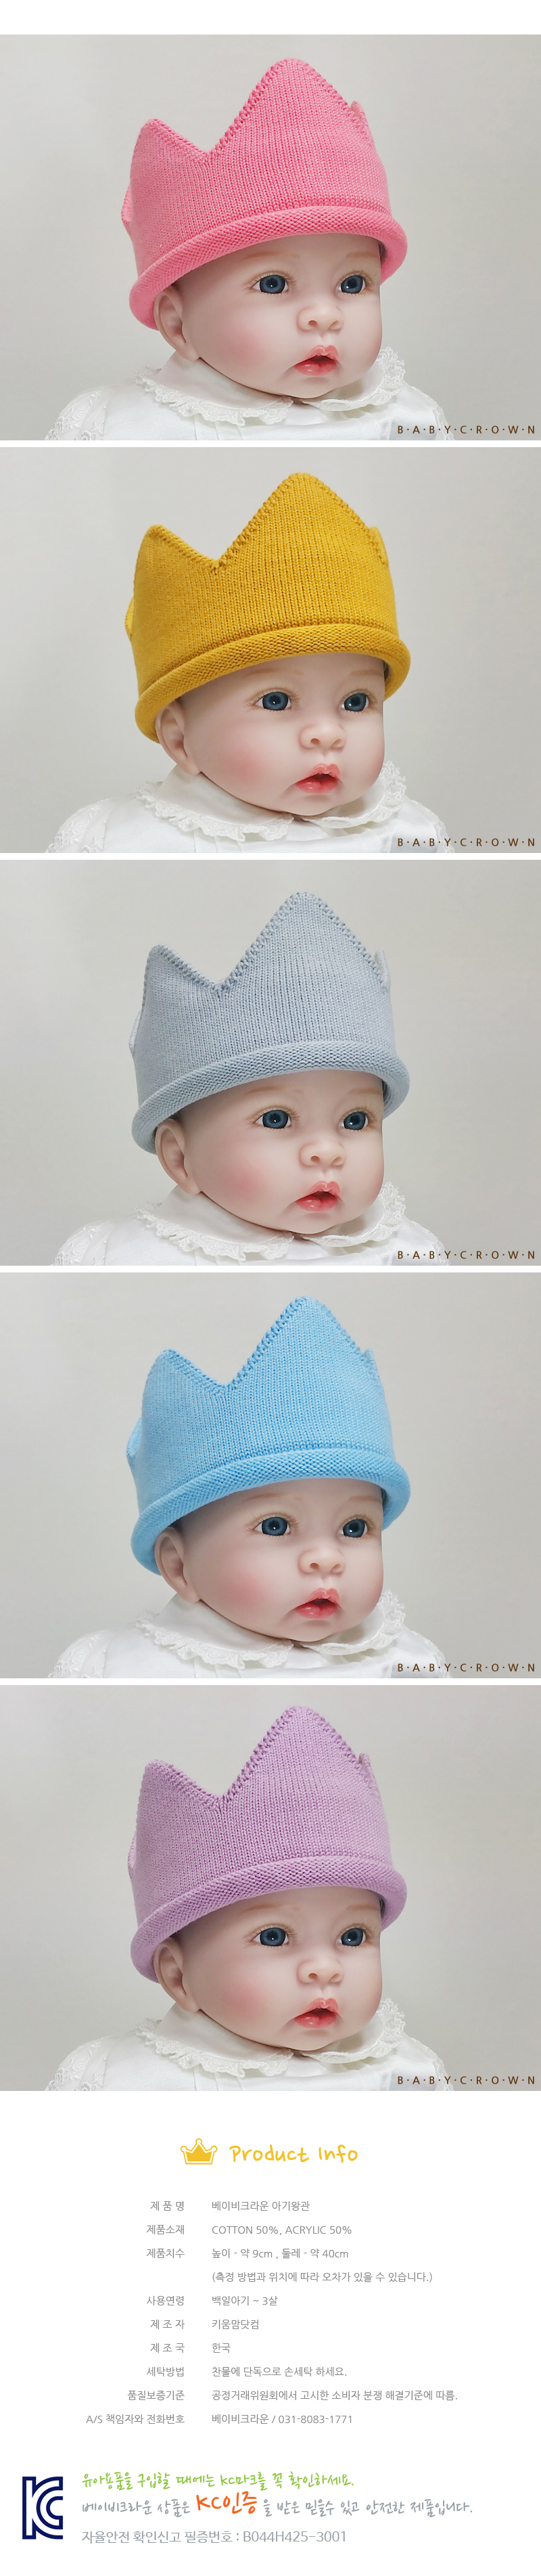 [ Babycrown ] [Baby Crown] baby knit crown cutie (candy)